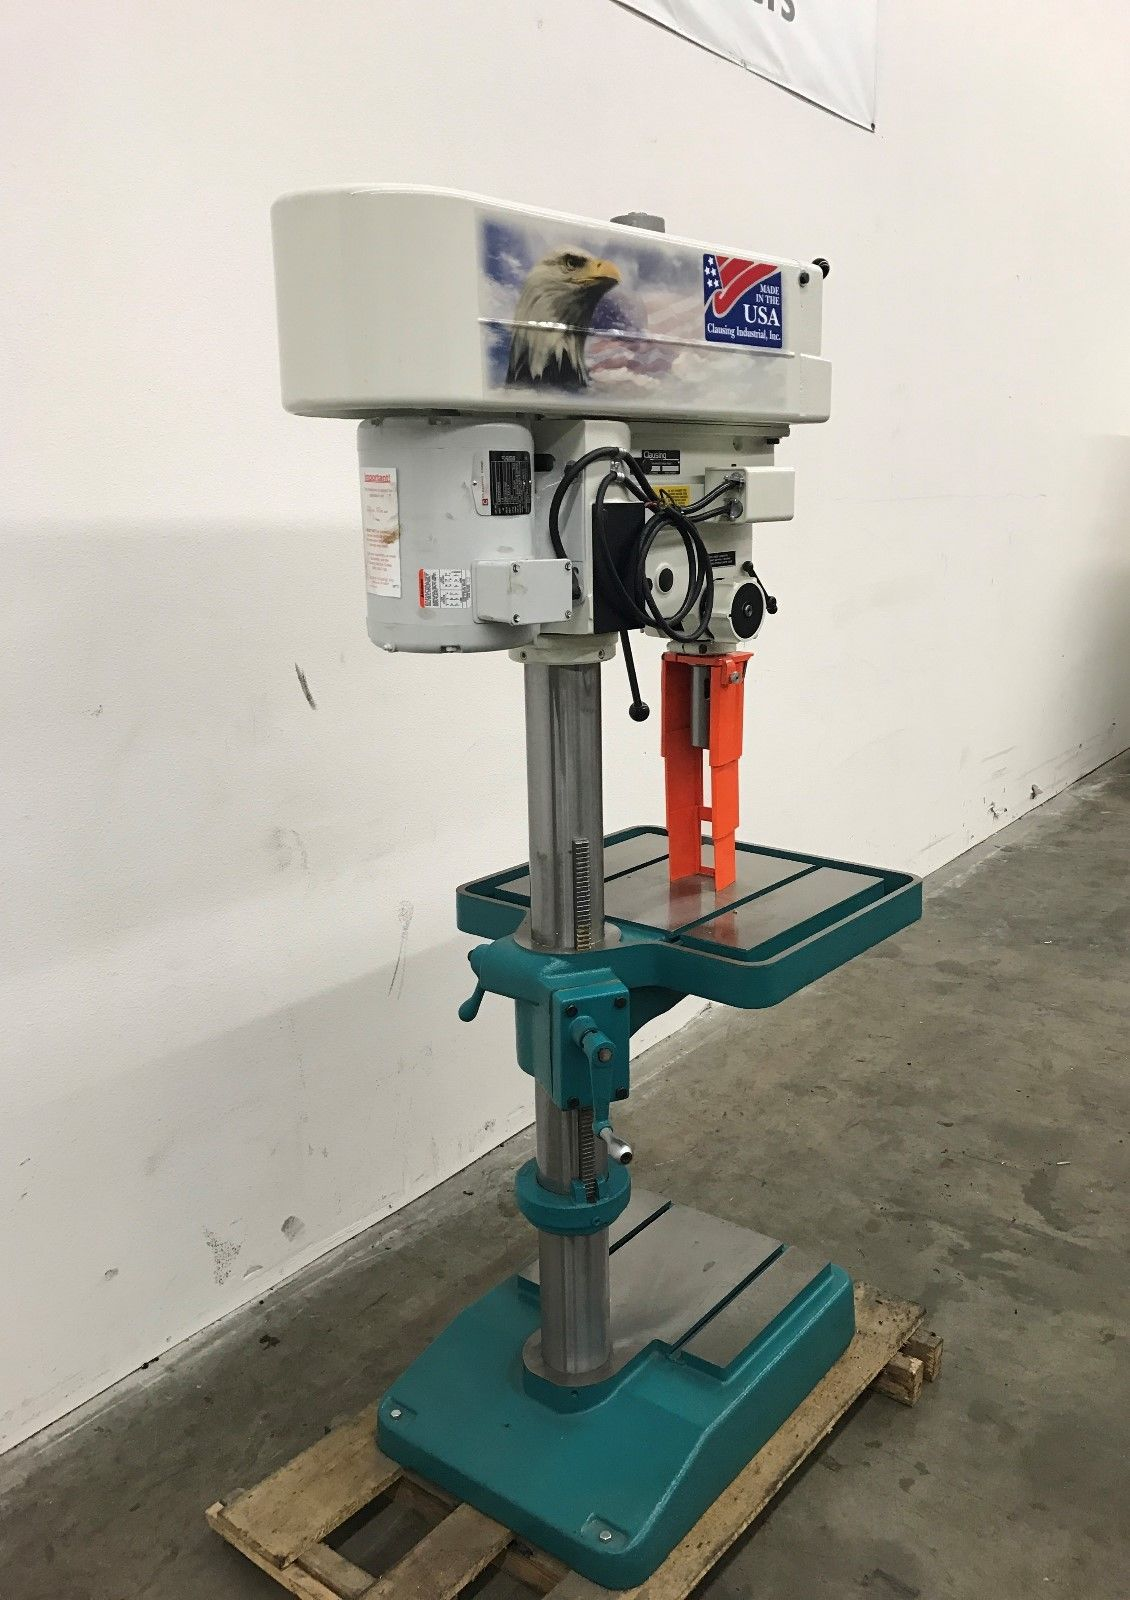 king pd16b press drill parts manual